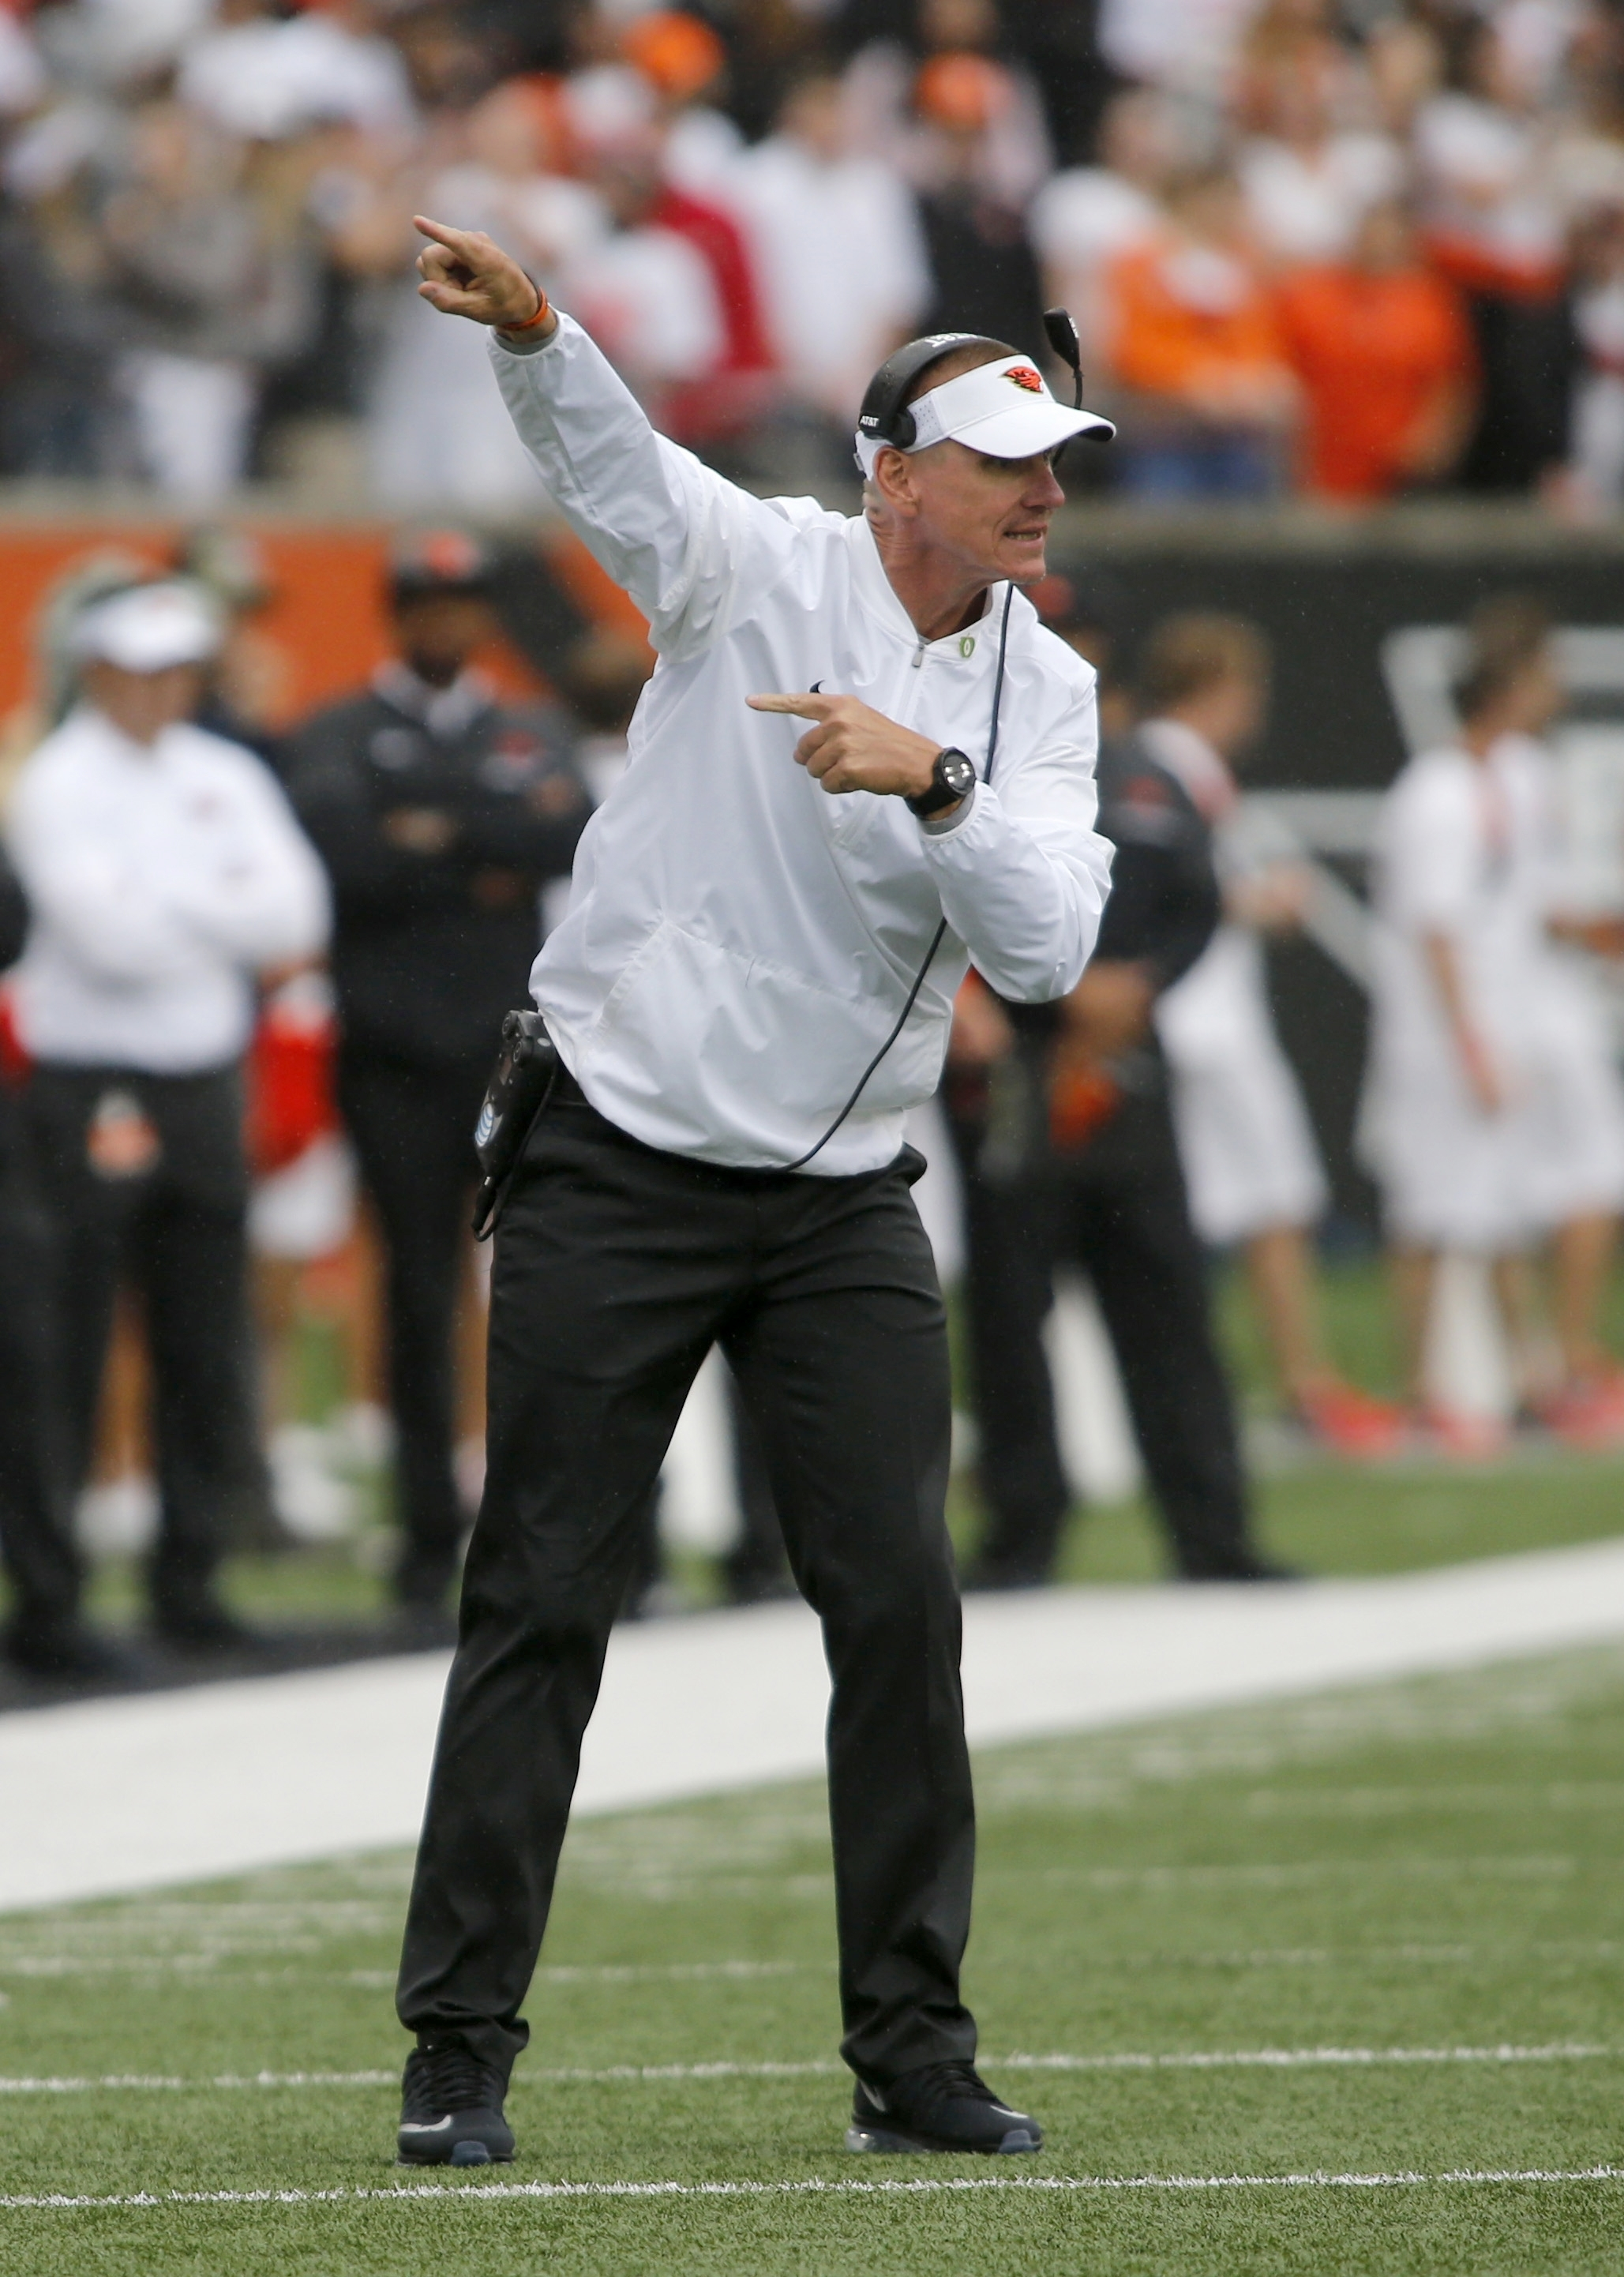 FILE--In this Sept. 17, 2016, file photo, Oregon State coach Gary Andersen gestures during the team's NCAA college football game in Corvallis, Ore. Oregon State is still looking for its first conference win as it faces California in Corvallis on Saturday,